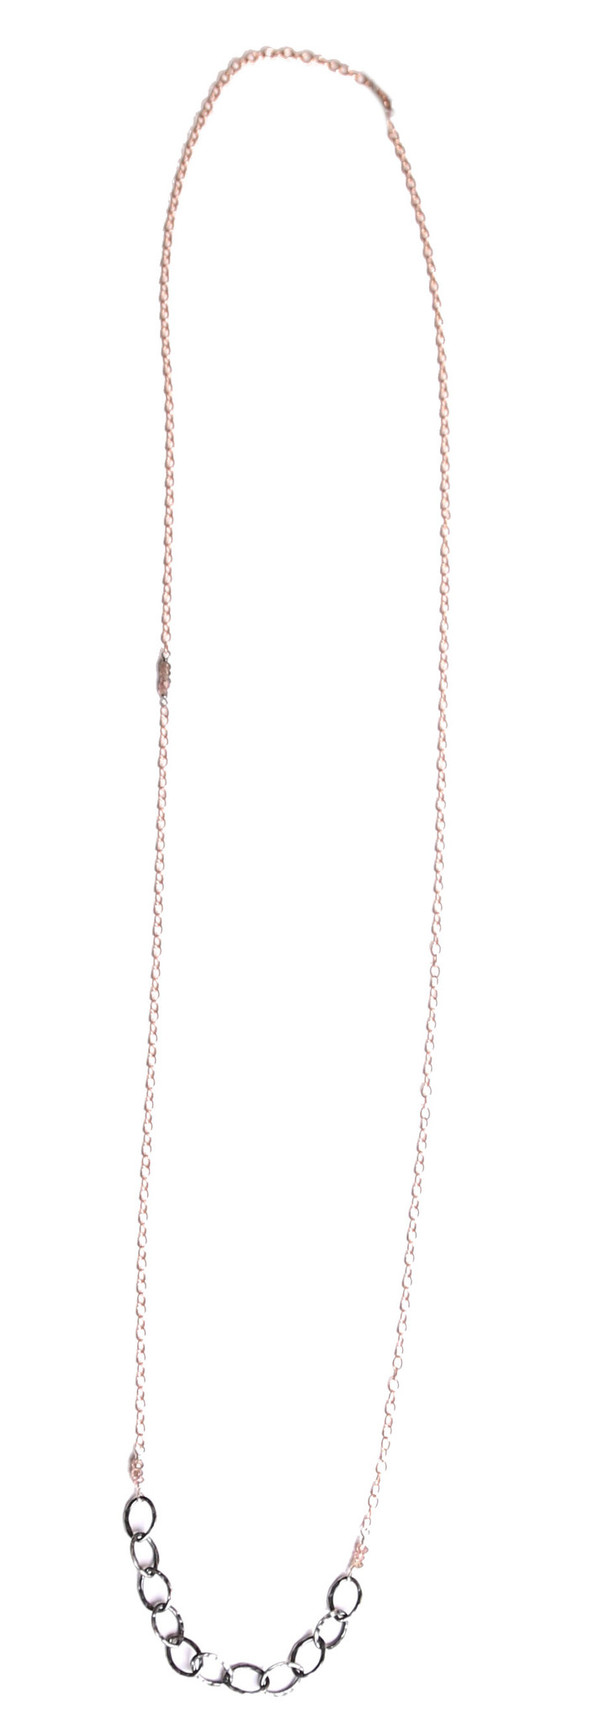 Sarah Dunn Rose Gold Oxidized Chain Links Necklace